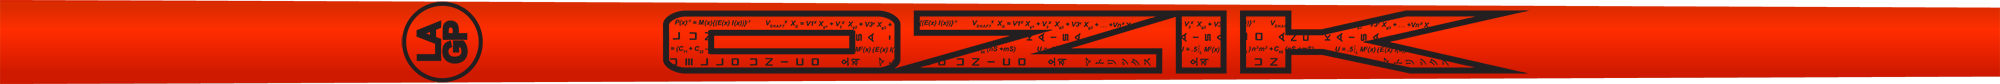 Ozik White Tie: Ferrari Red Black Satin - Wood 60 R